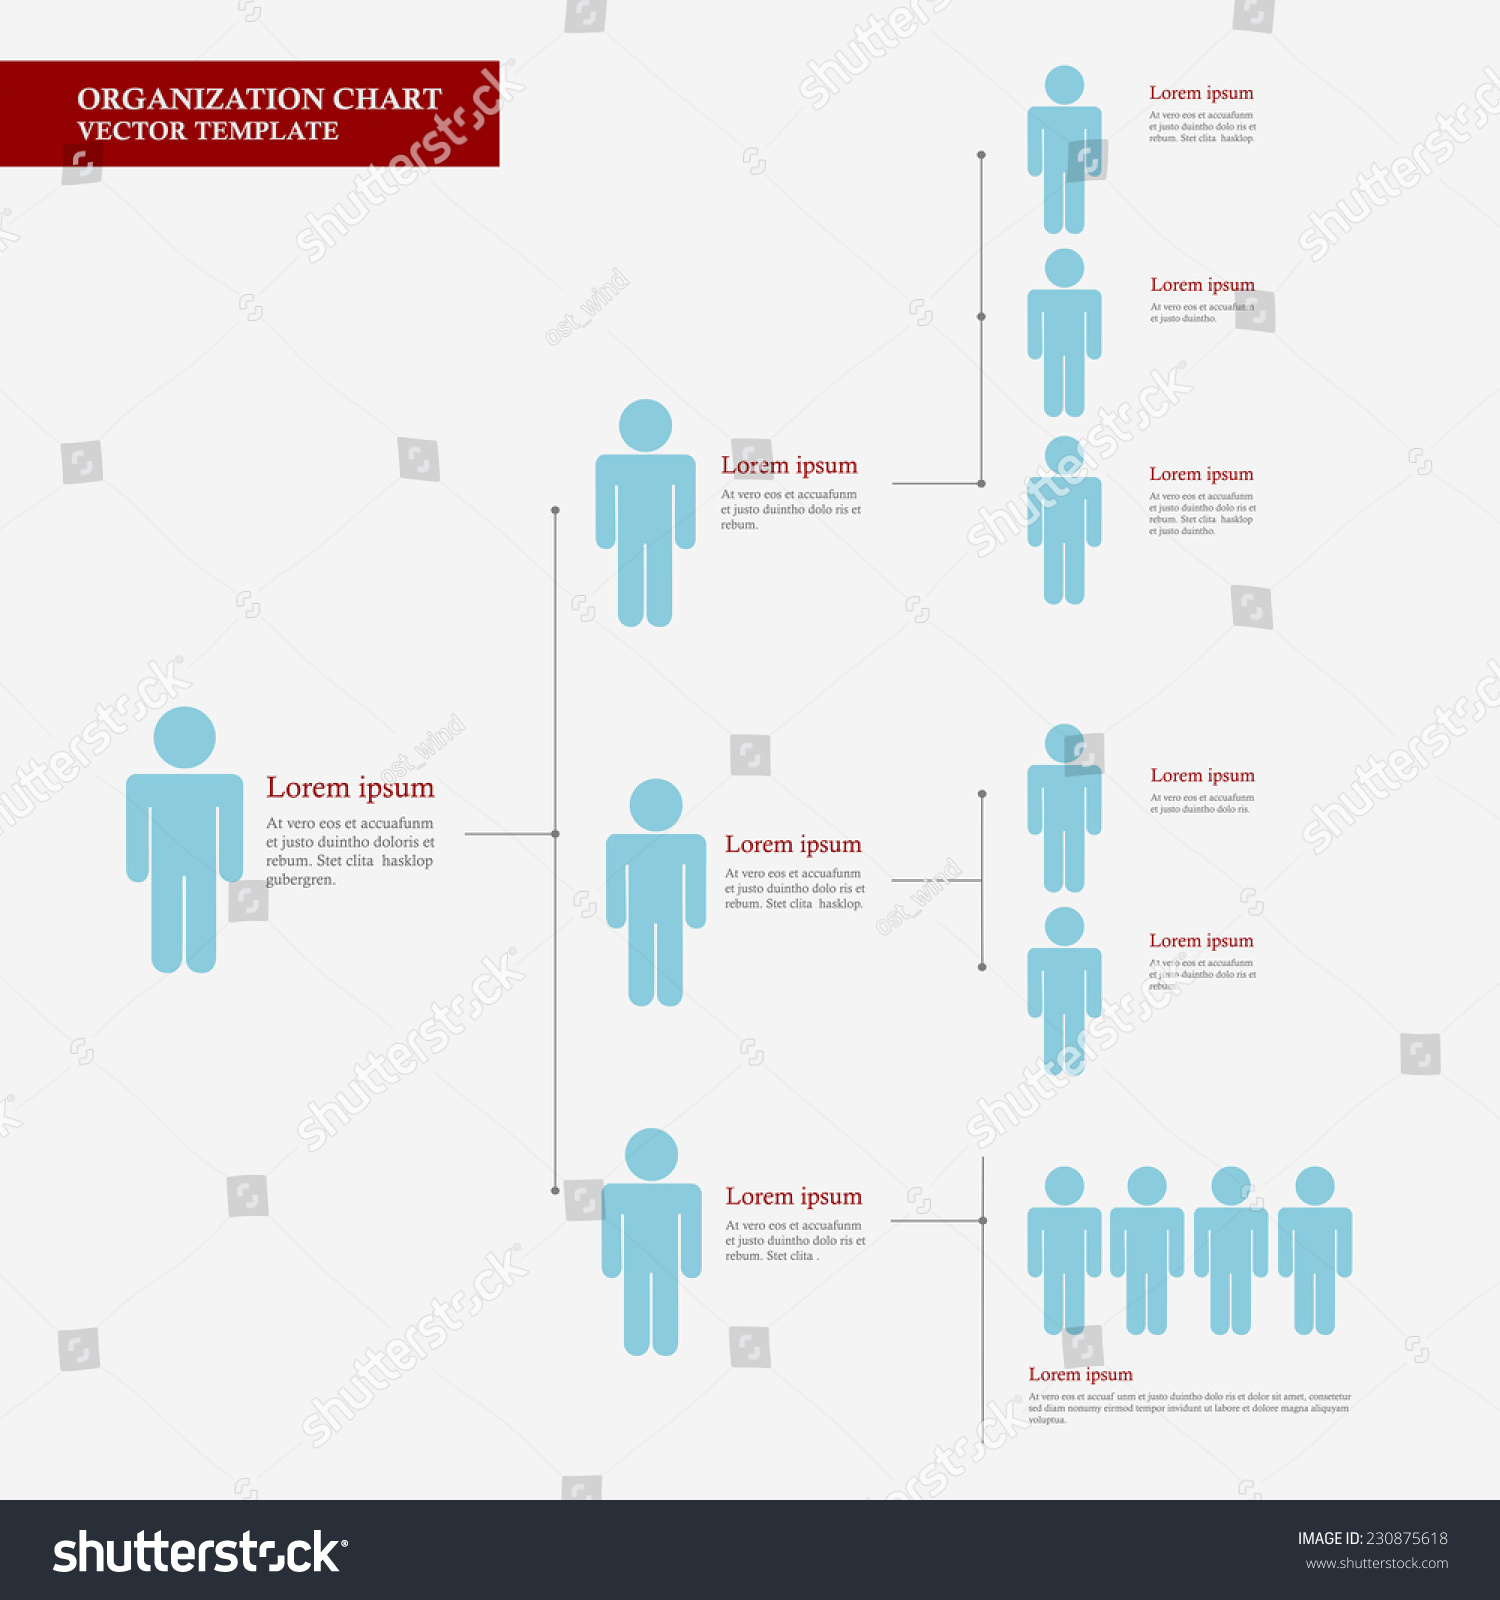 Corporate organization chart template business people stock photo corporate organization chart template with business people icons corporate hierarchy human model connection wajeb Image collections